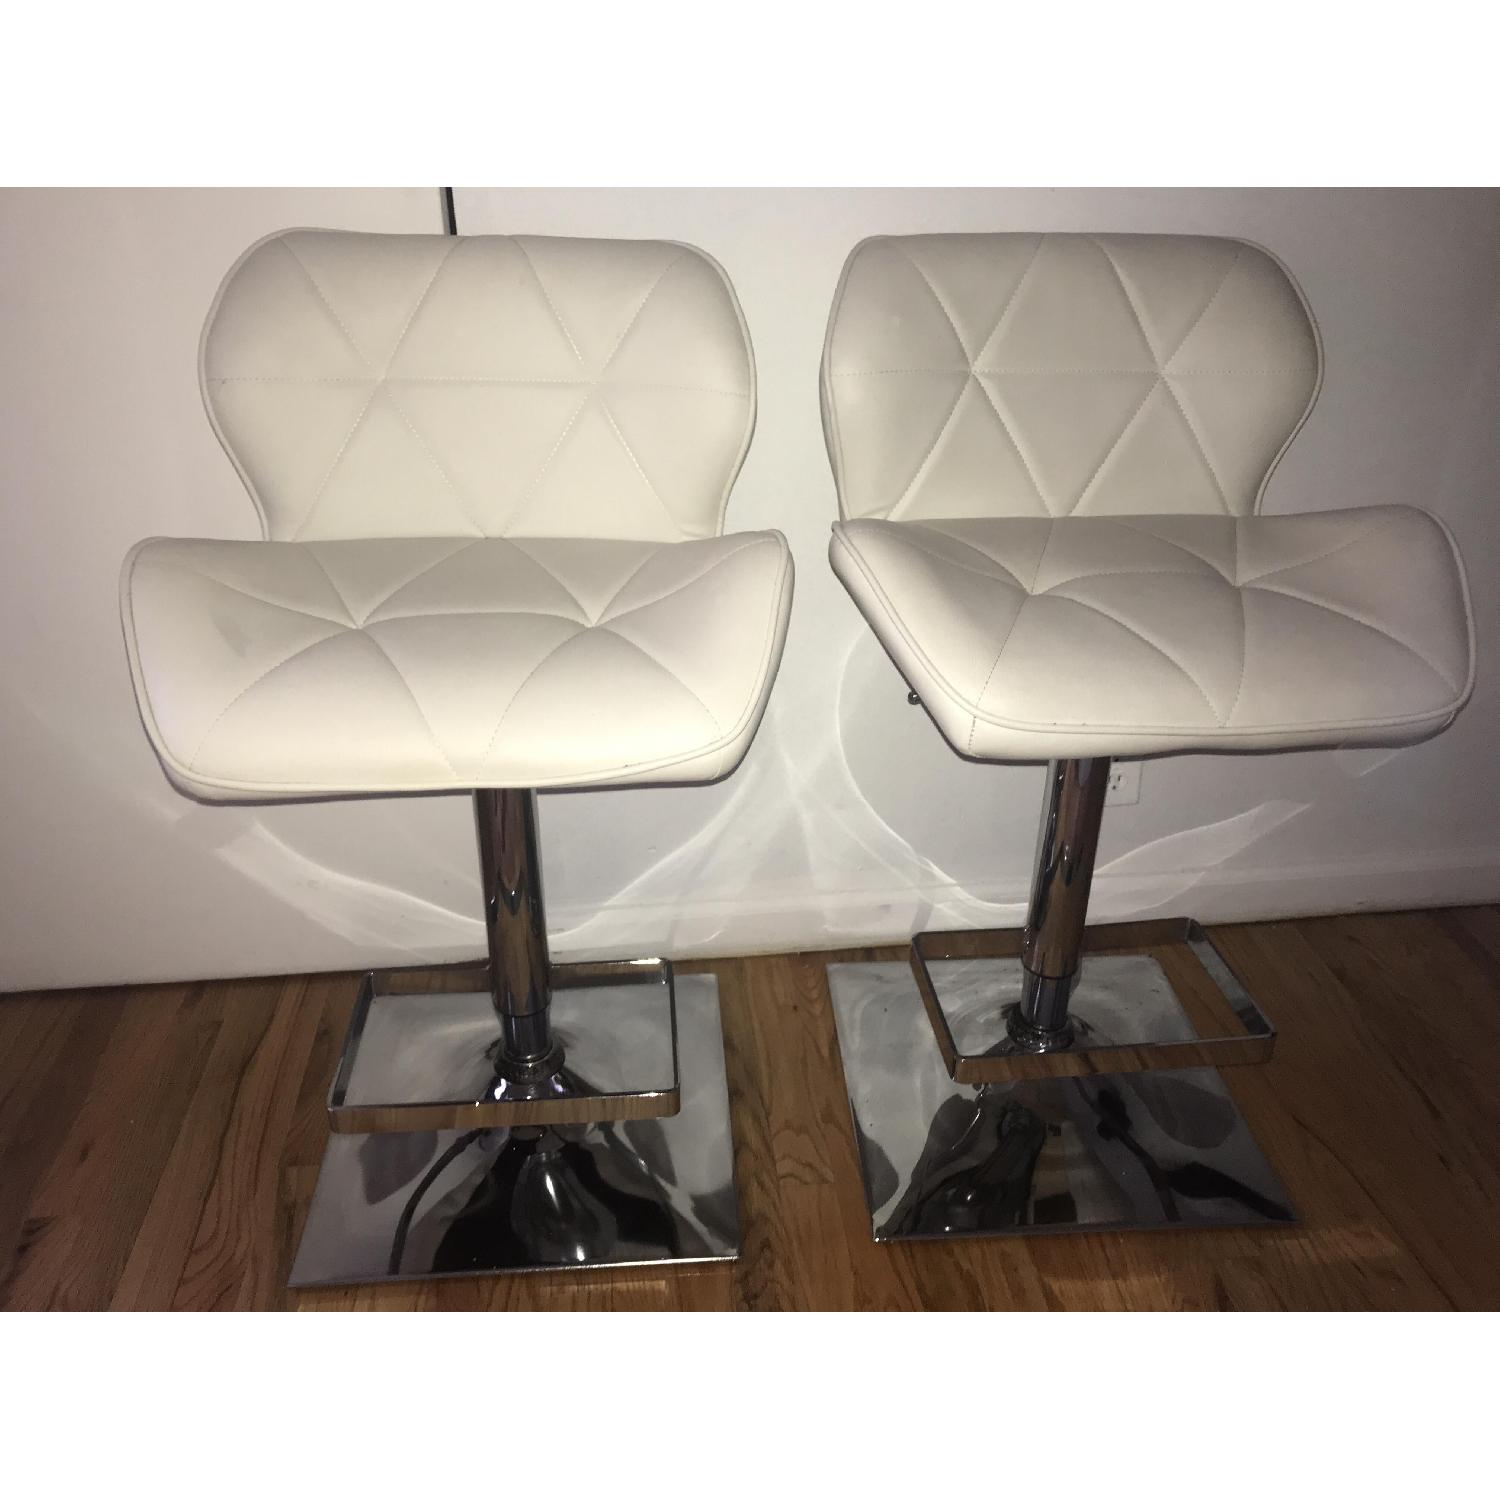 Anji Tianwei Steel White Faux Leather Bar Chairs - image-1